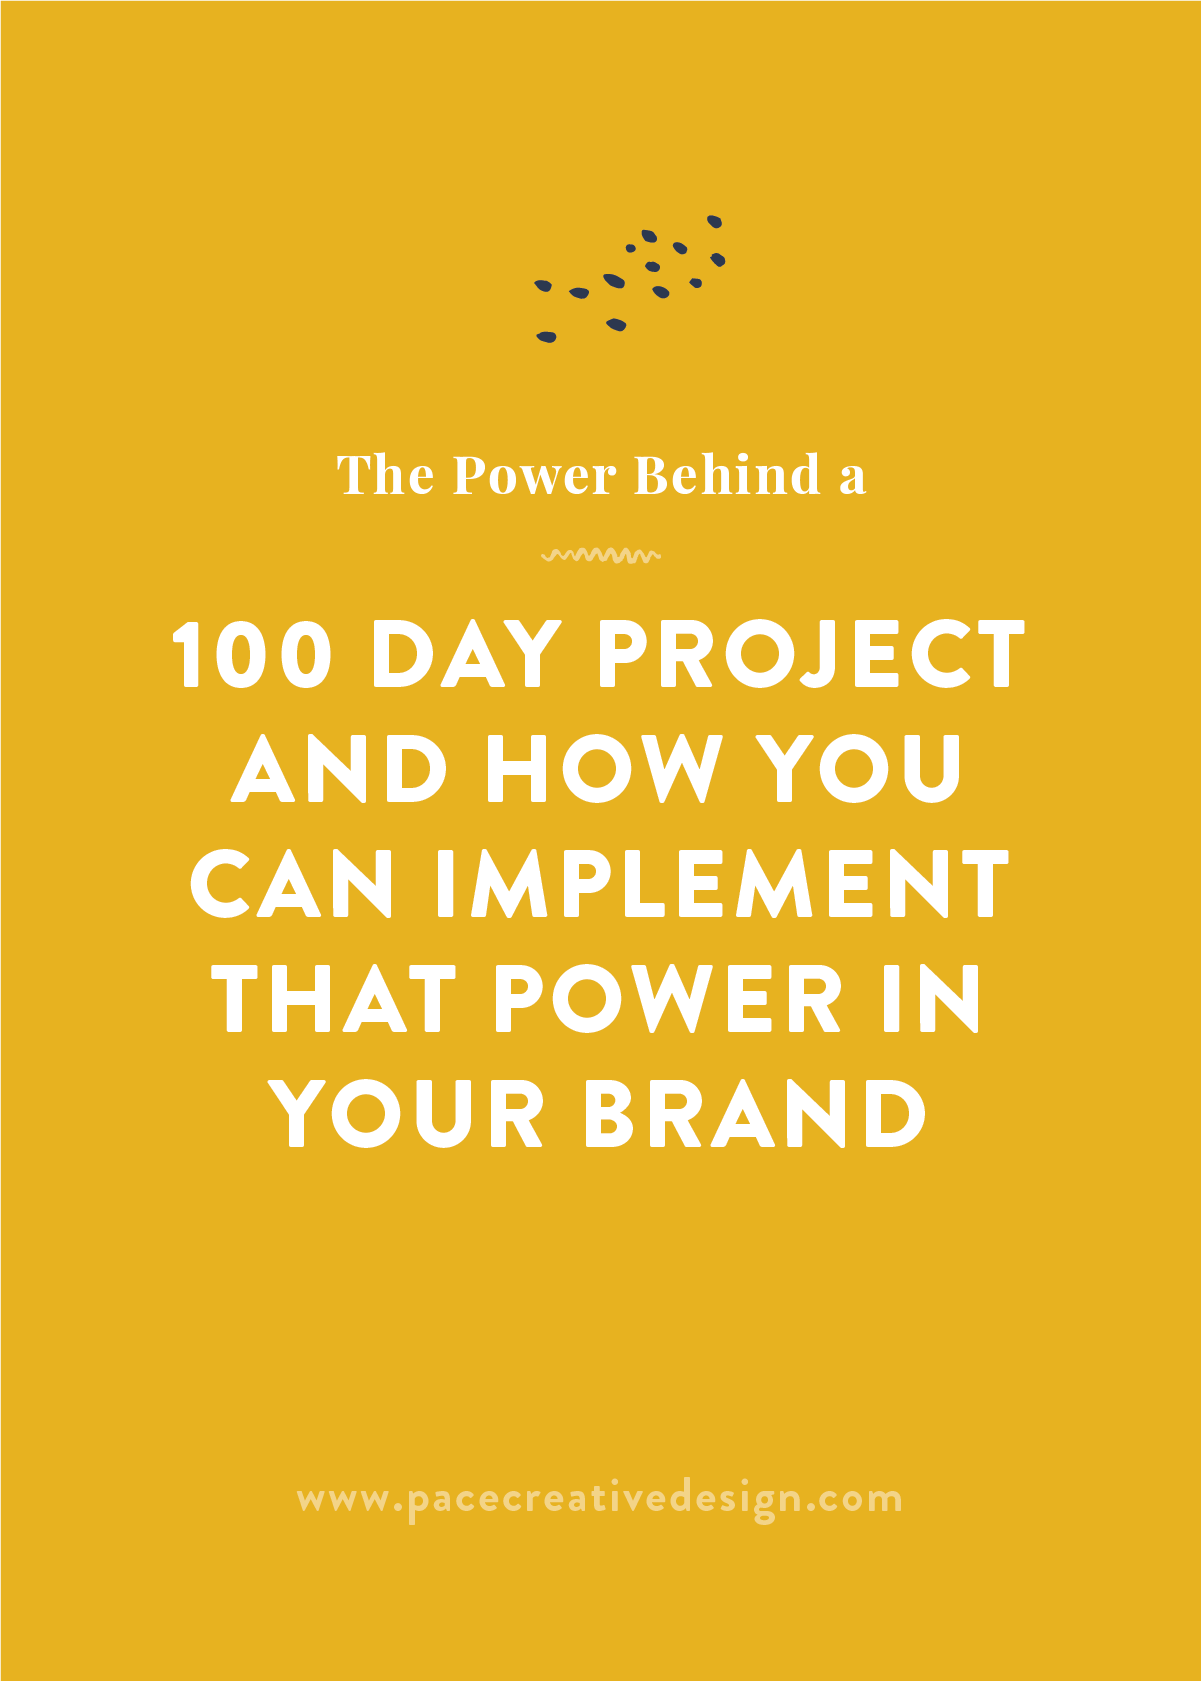 The Power Behind a 100 Day Project by Pace Creative Design Studio